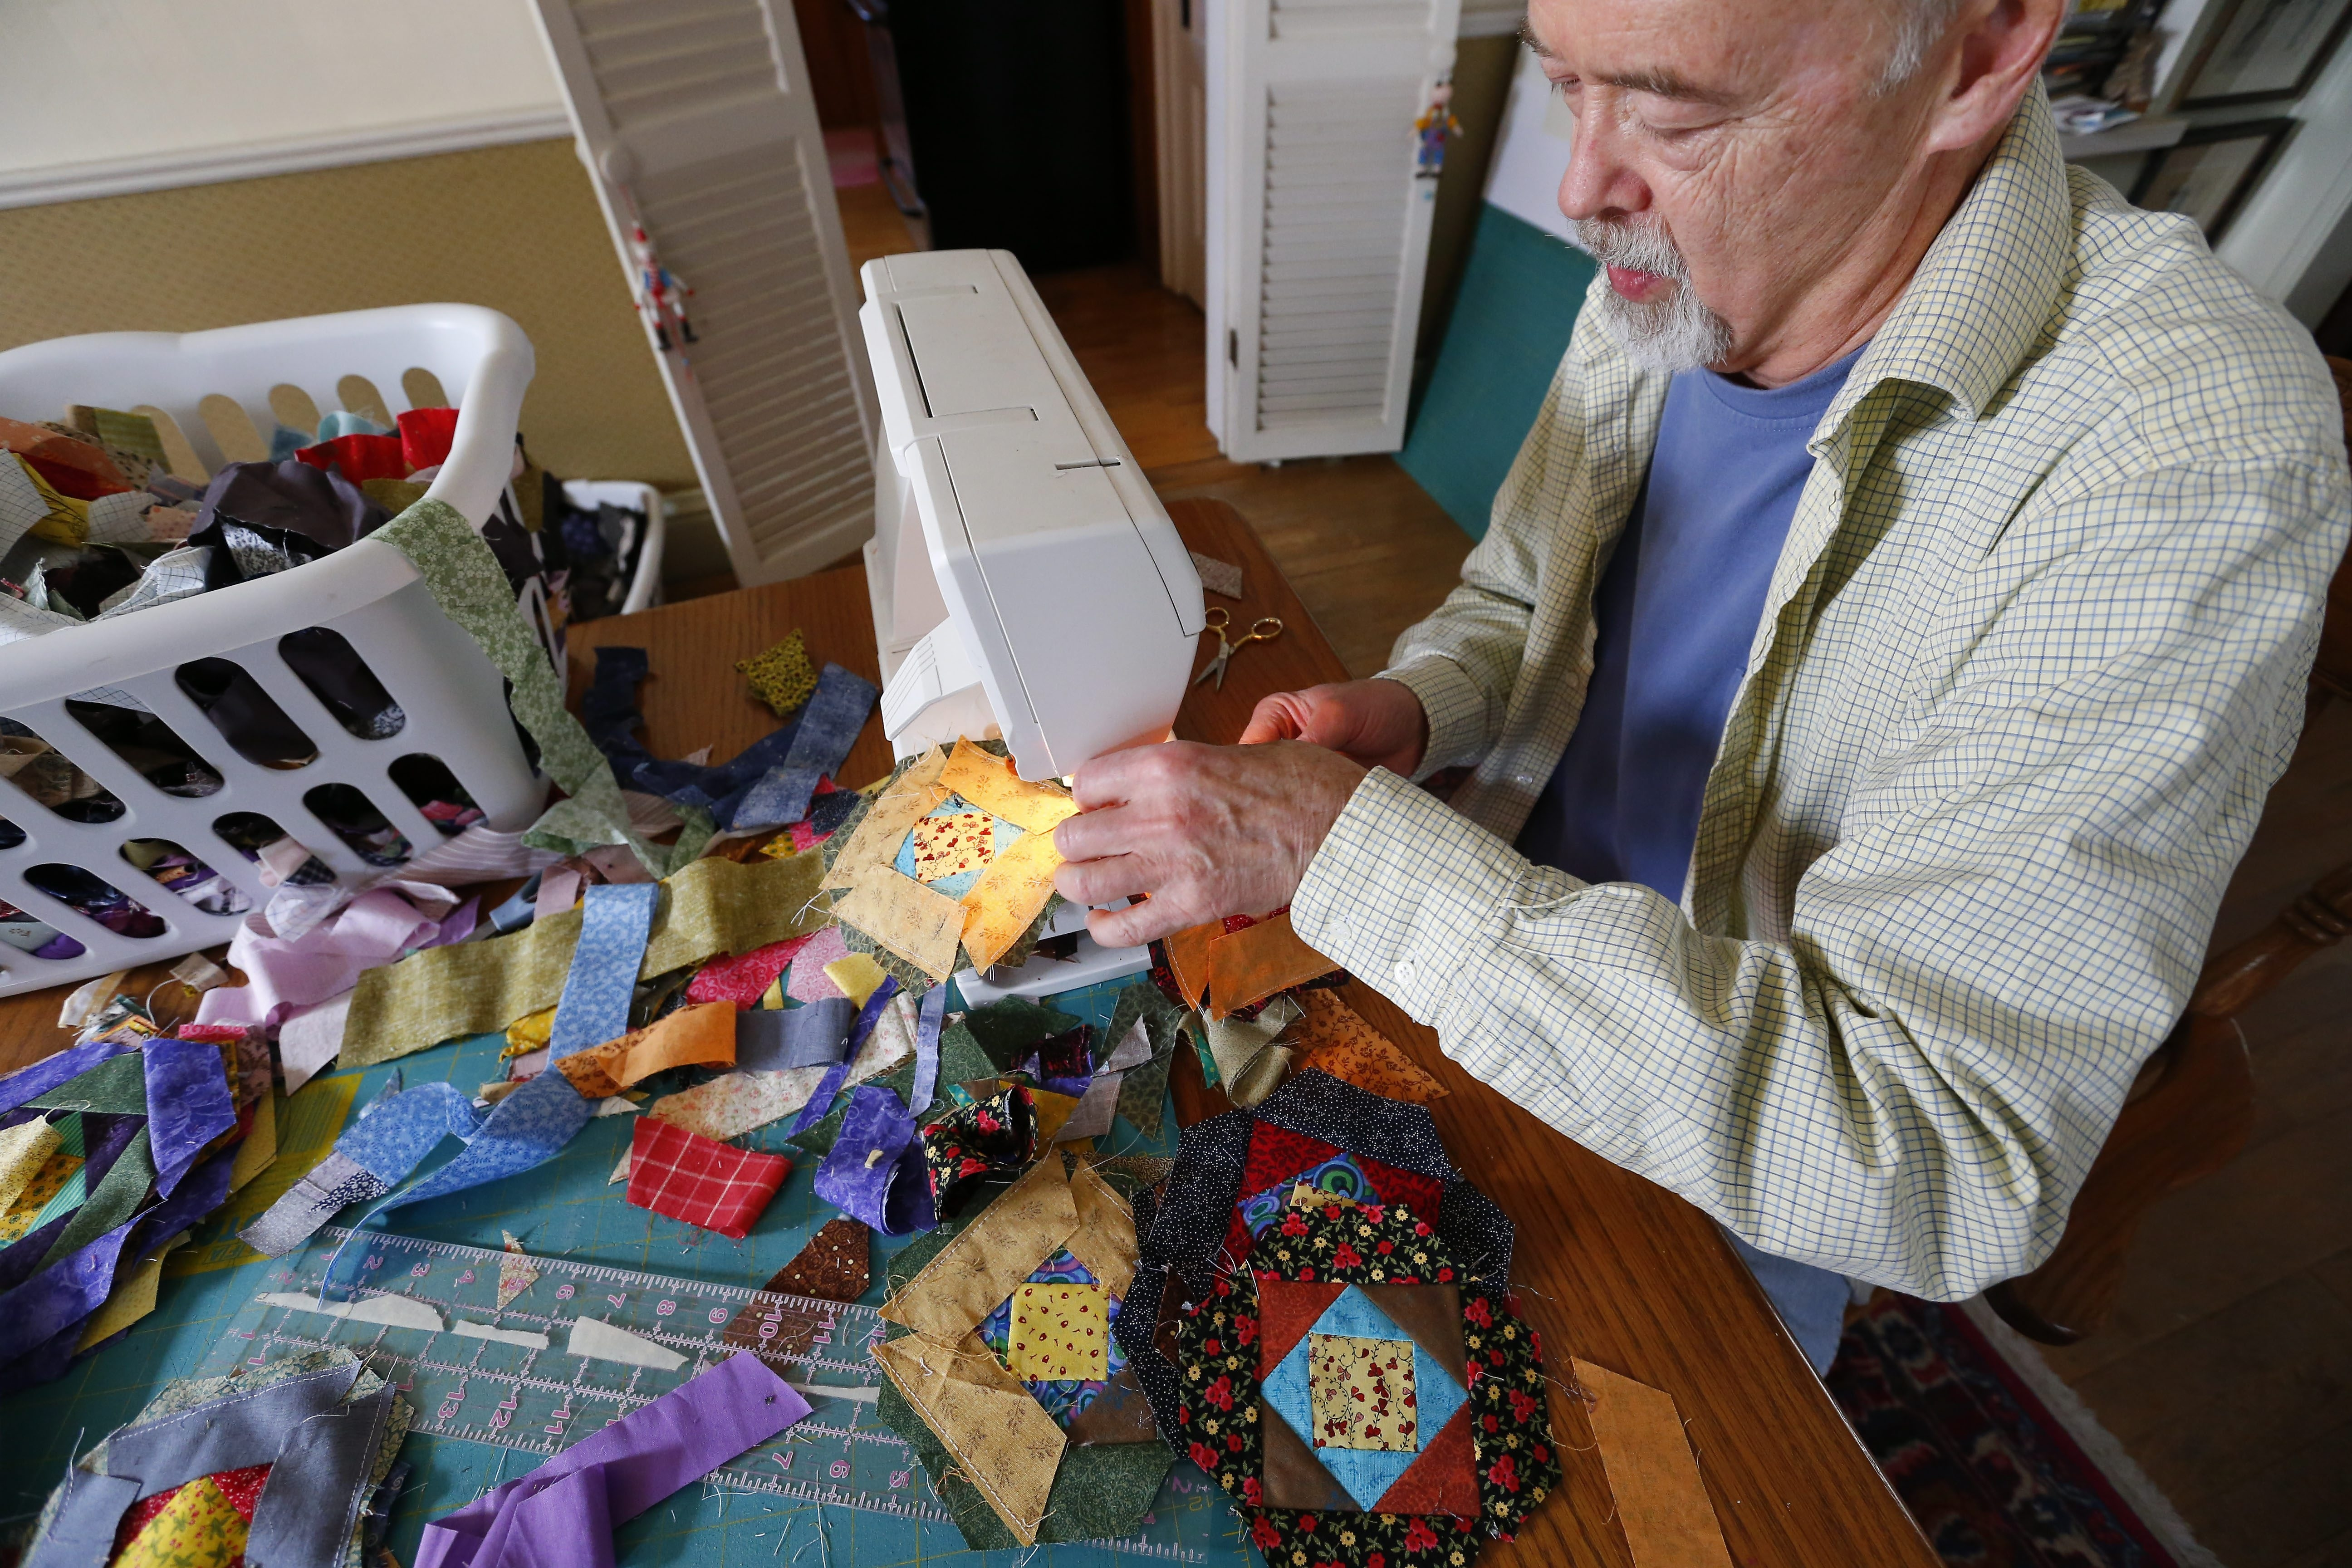 Hamburg librarian Jack Edson stitches together quilting squares he will assemble into a fabric replica of a famous portrait.